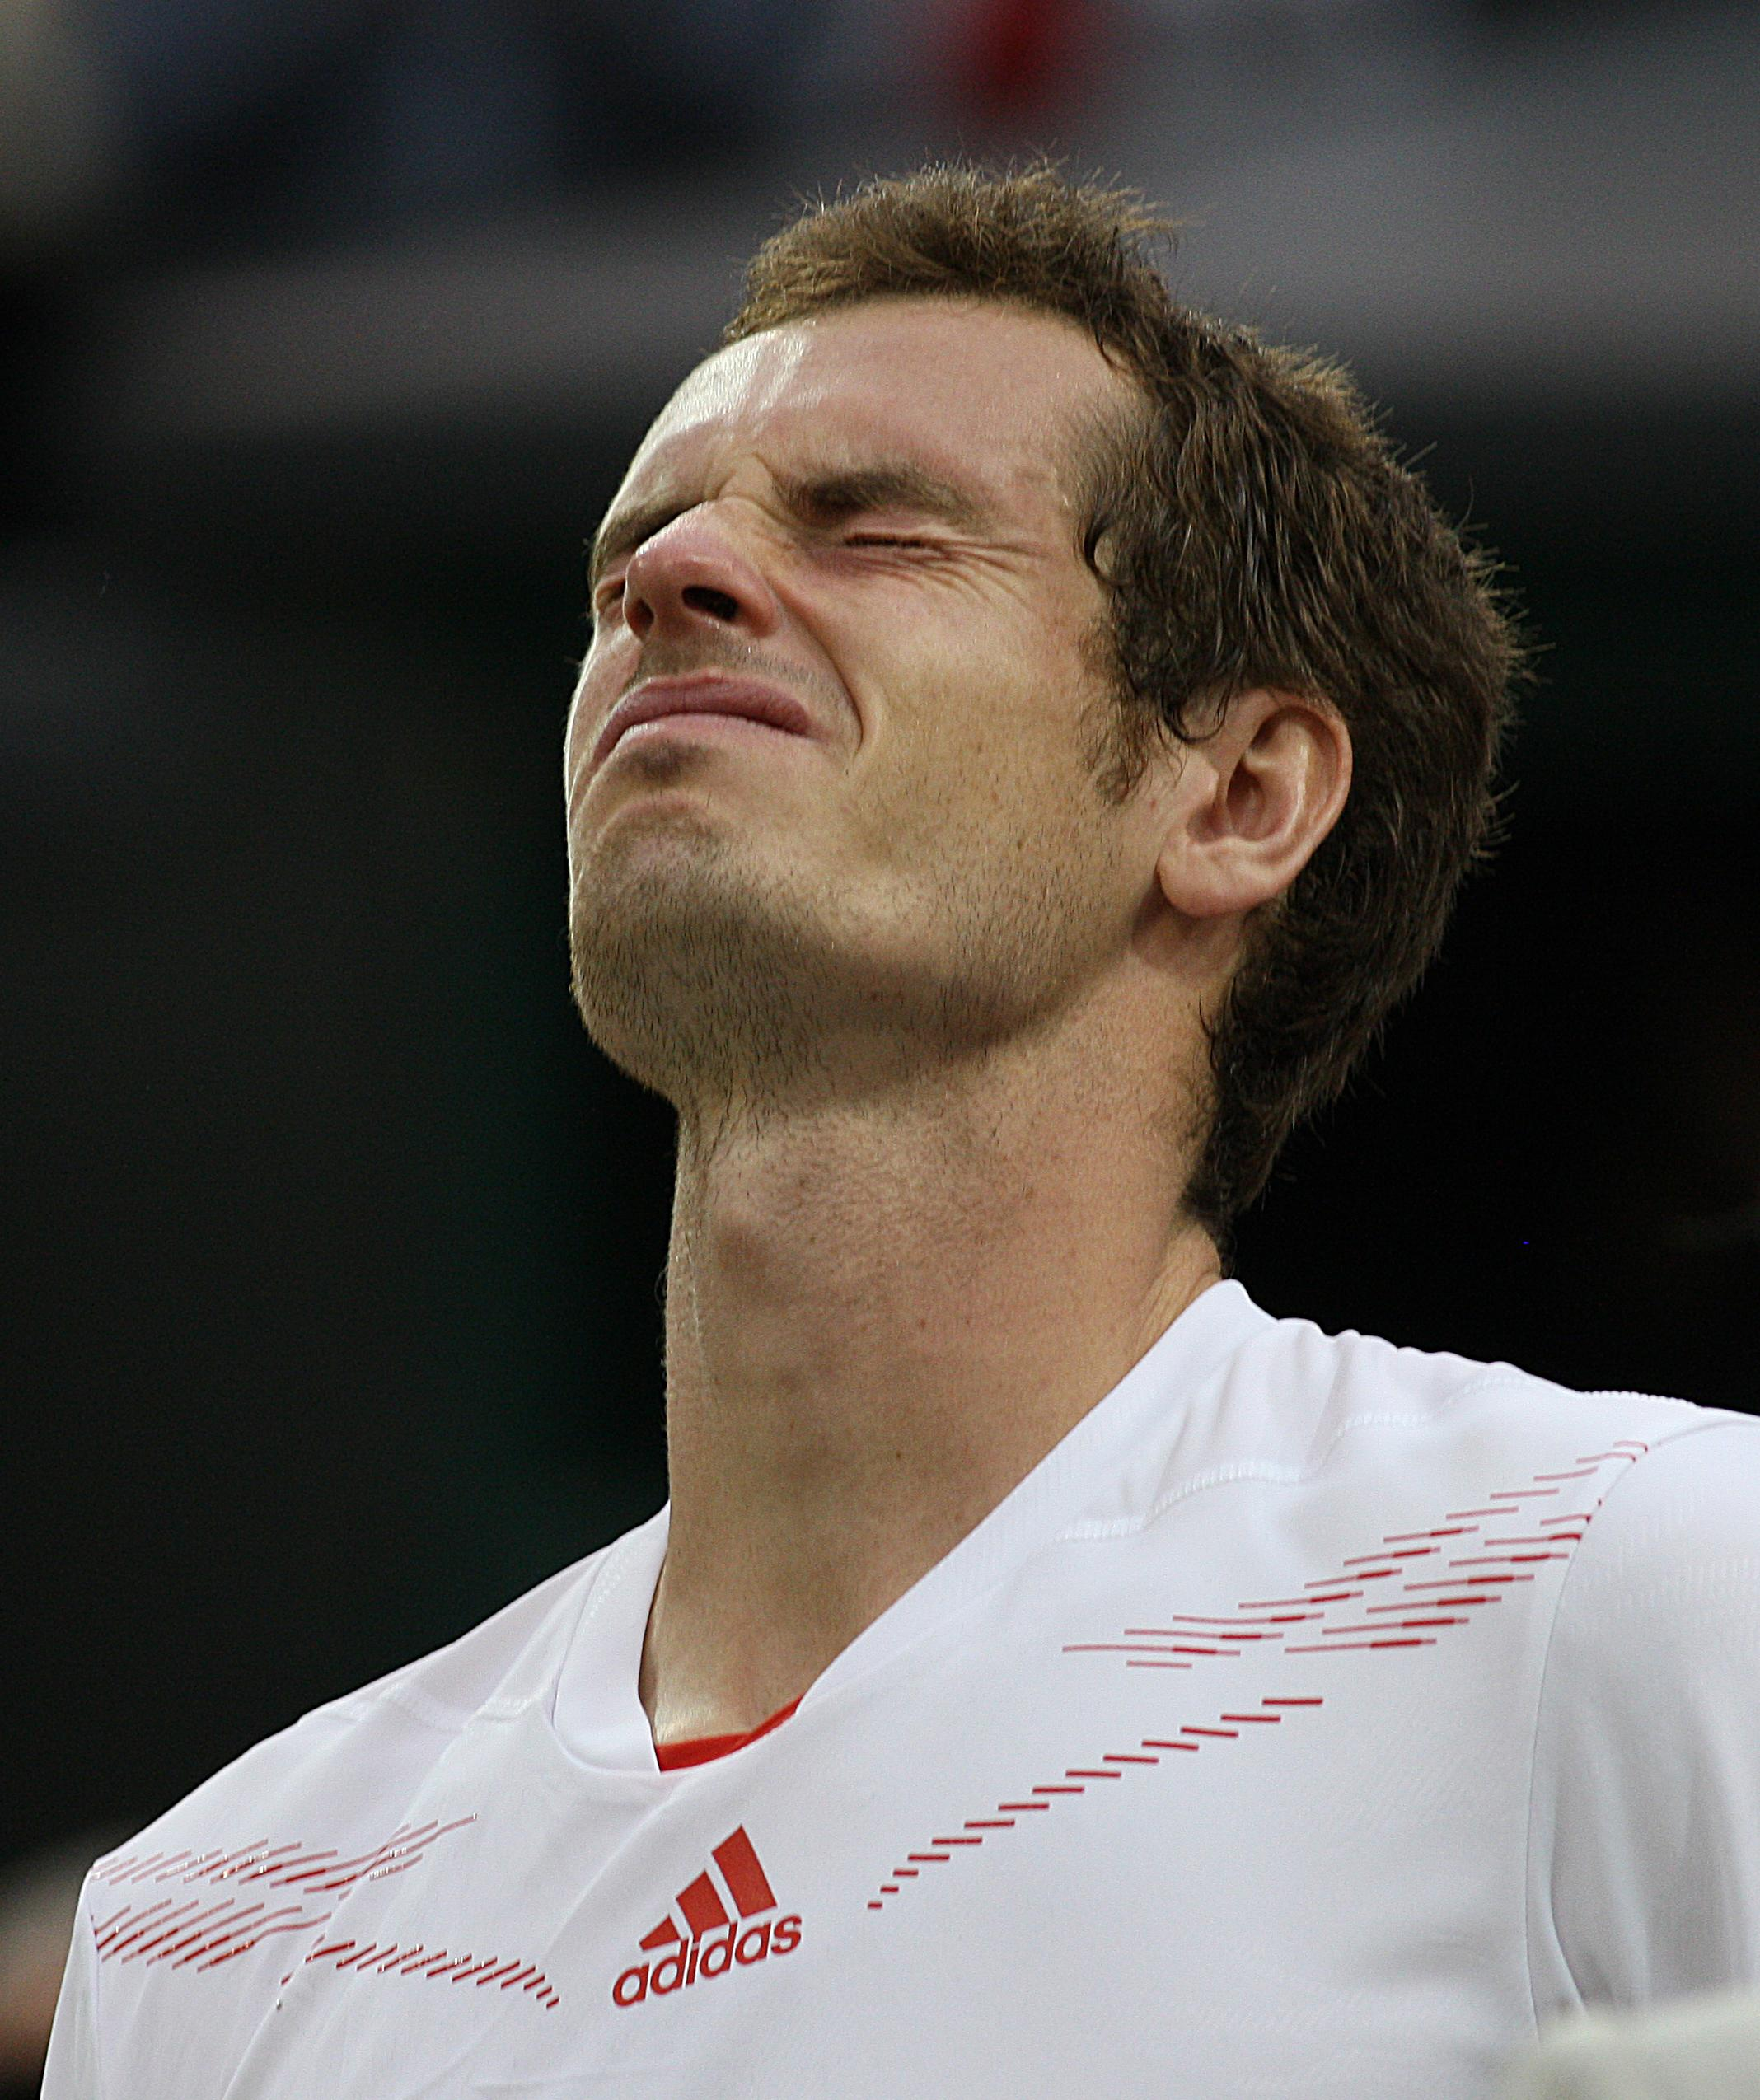 Andy Murray couldn't hold back the tears after losing the 2012 Wimbledon final